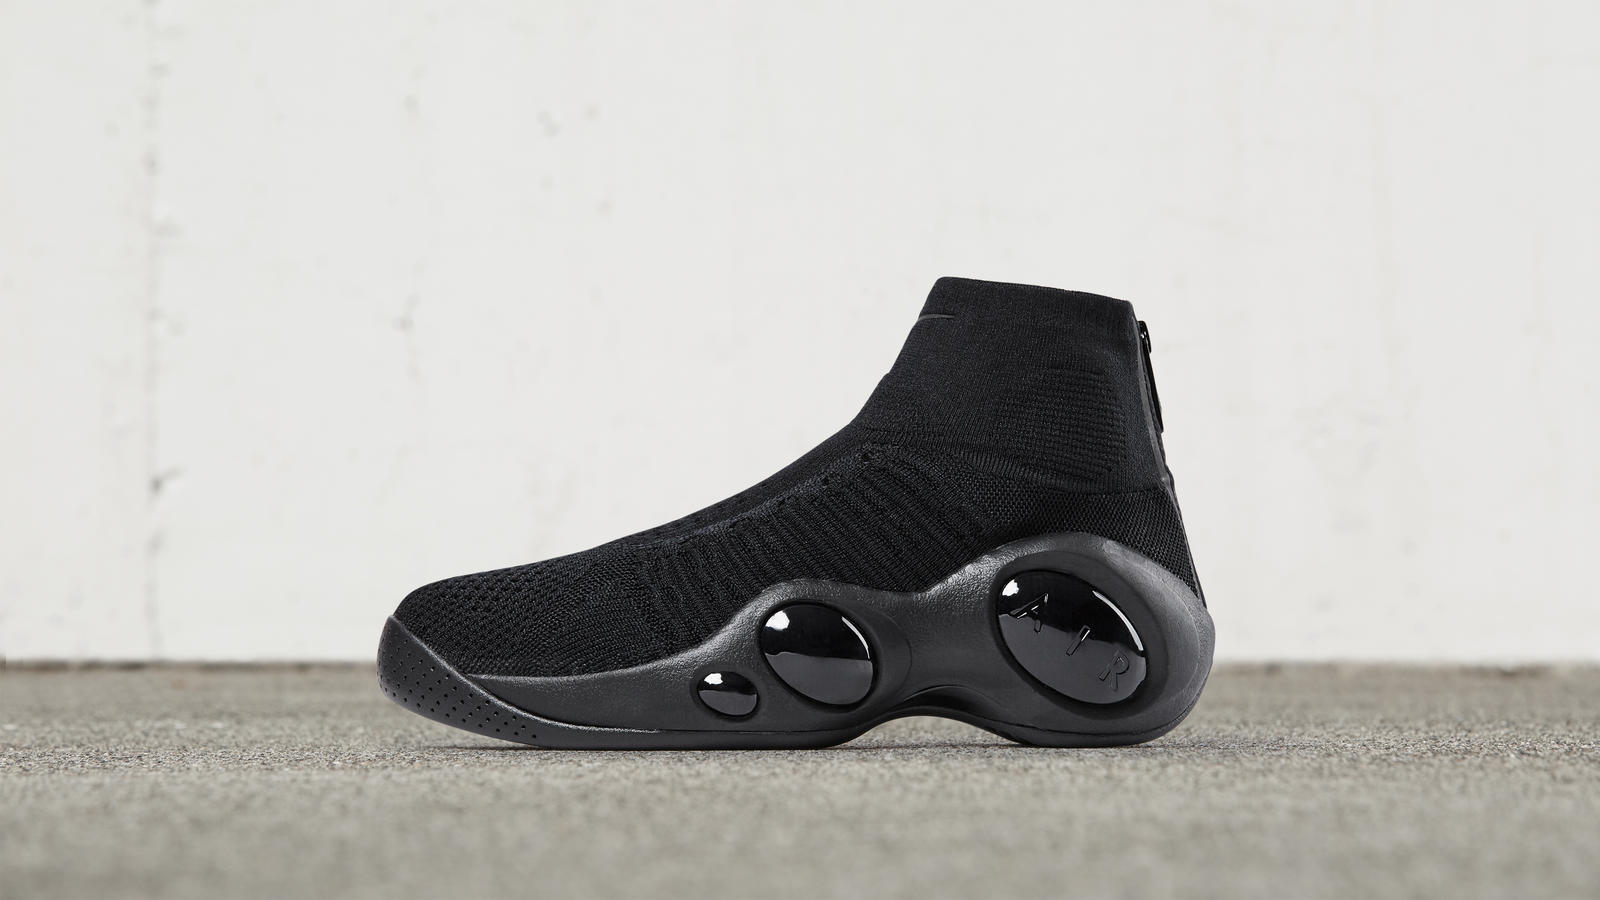 e3f76a593ddd Nike Flight Bonafide - Nike News